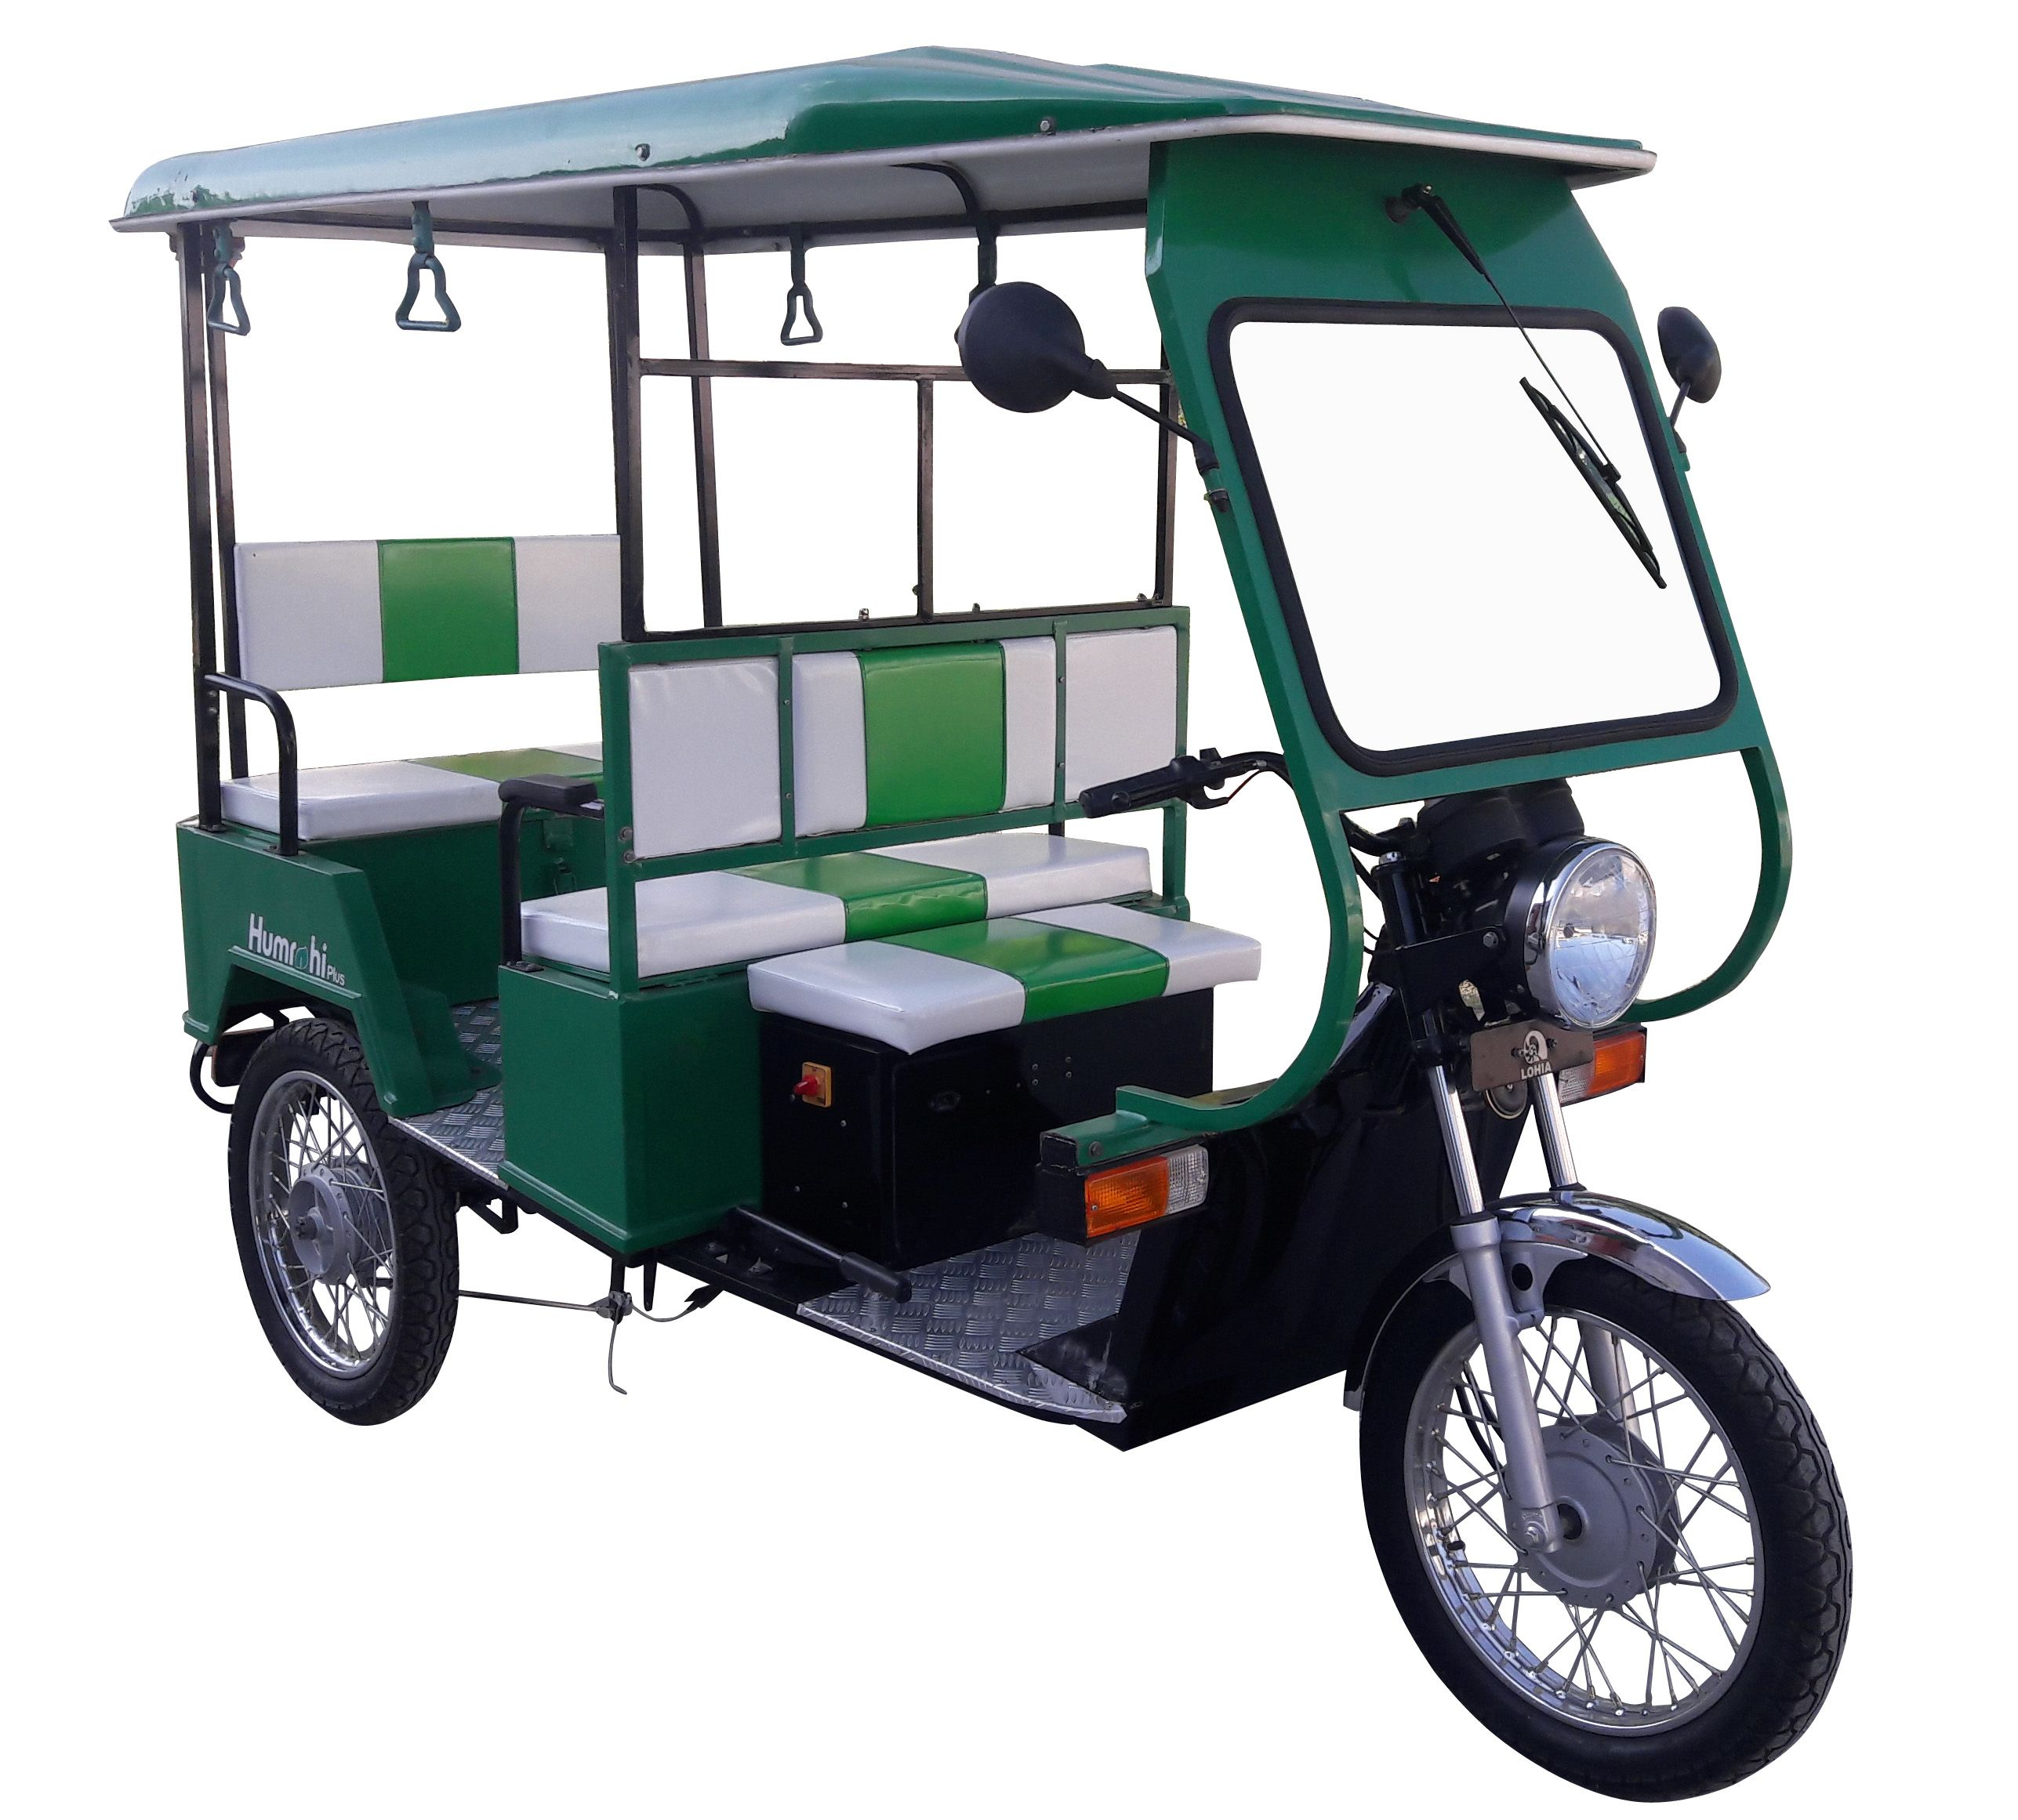 Pin By Unicotechnologies On Lohia Auto Electric E Scooters E Rickshaws Electric Vehicles In India Electric Scooter Automobile Industry Automobile